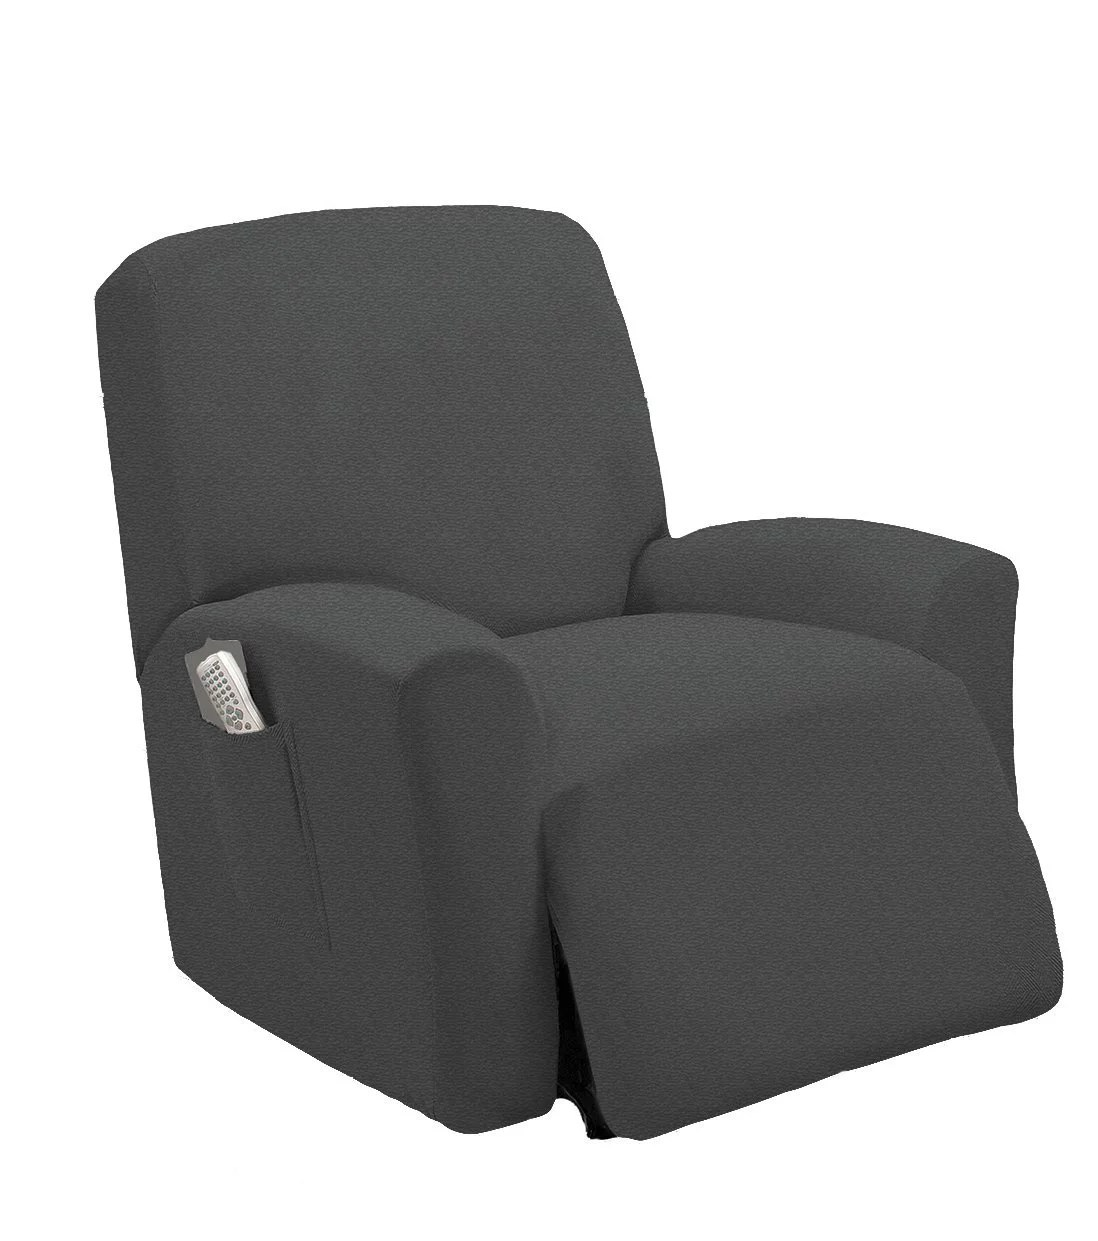 recliner chair covers grey leather dining room chairs with casters marcielo one piece stretch slipcover fit furniture lazy boy cover 1 couch walmart com